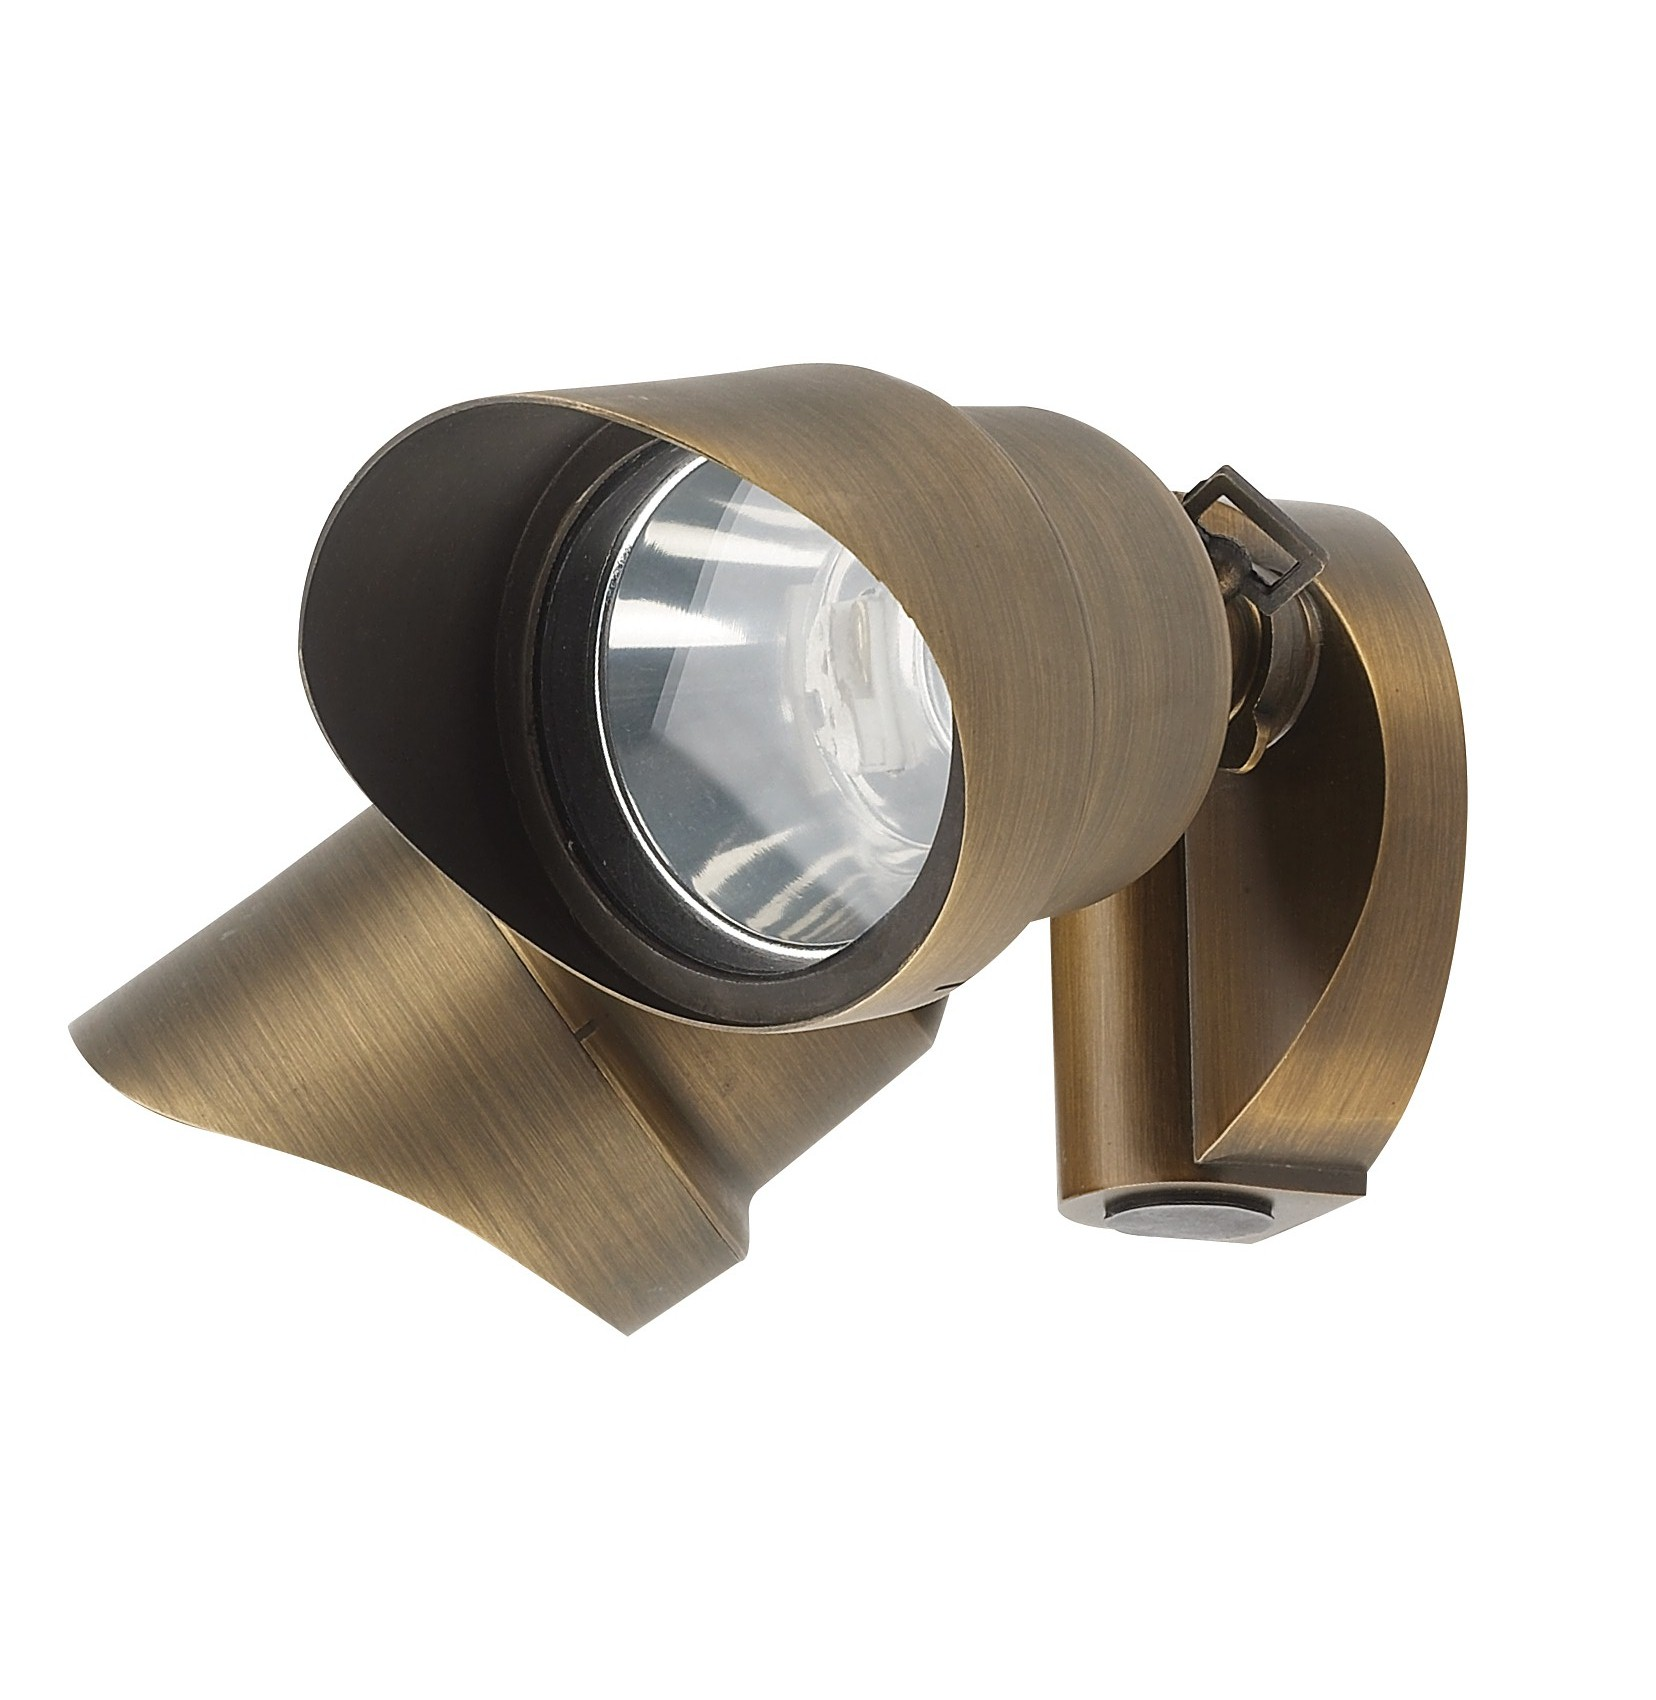 Best Quality Lighting (BQL) Die Cast Brass LV72 Wall Mount Light - Double Head  sc 1 st  Yard Illumination & Best Quality Lighting (BQL) Die Cast Brass LV72 Wall Mount Light ... azcodes.com